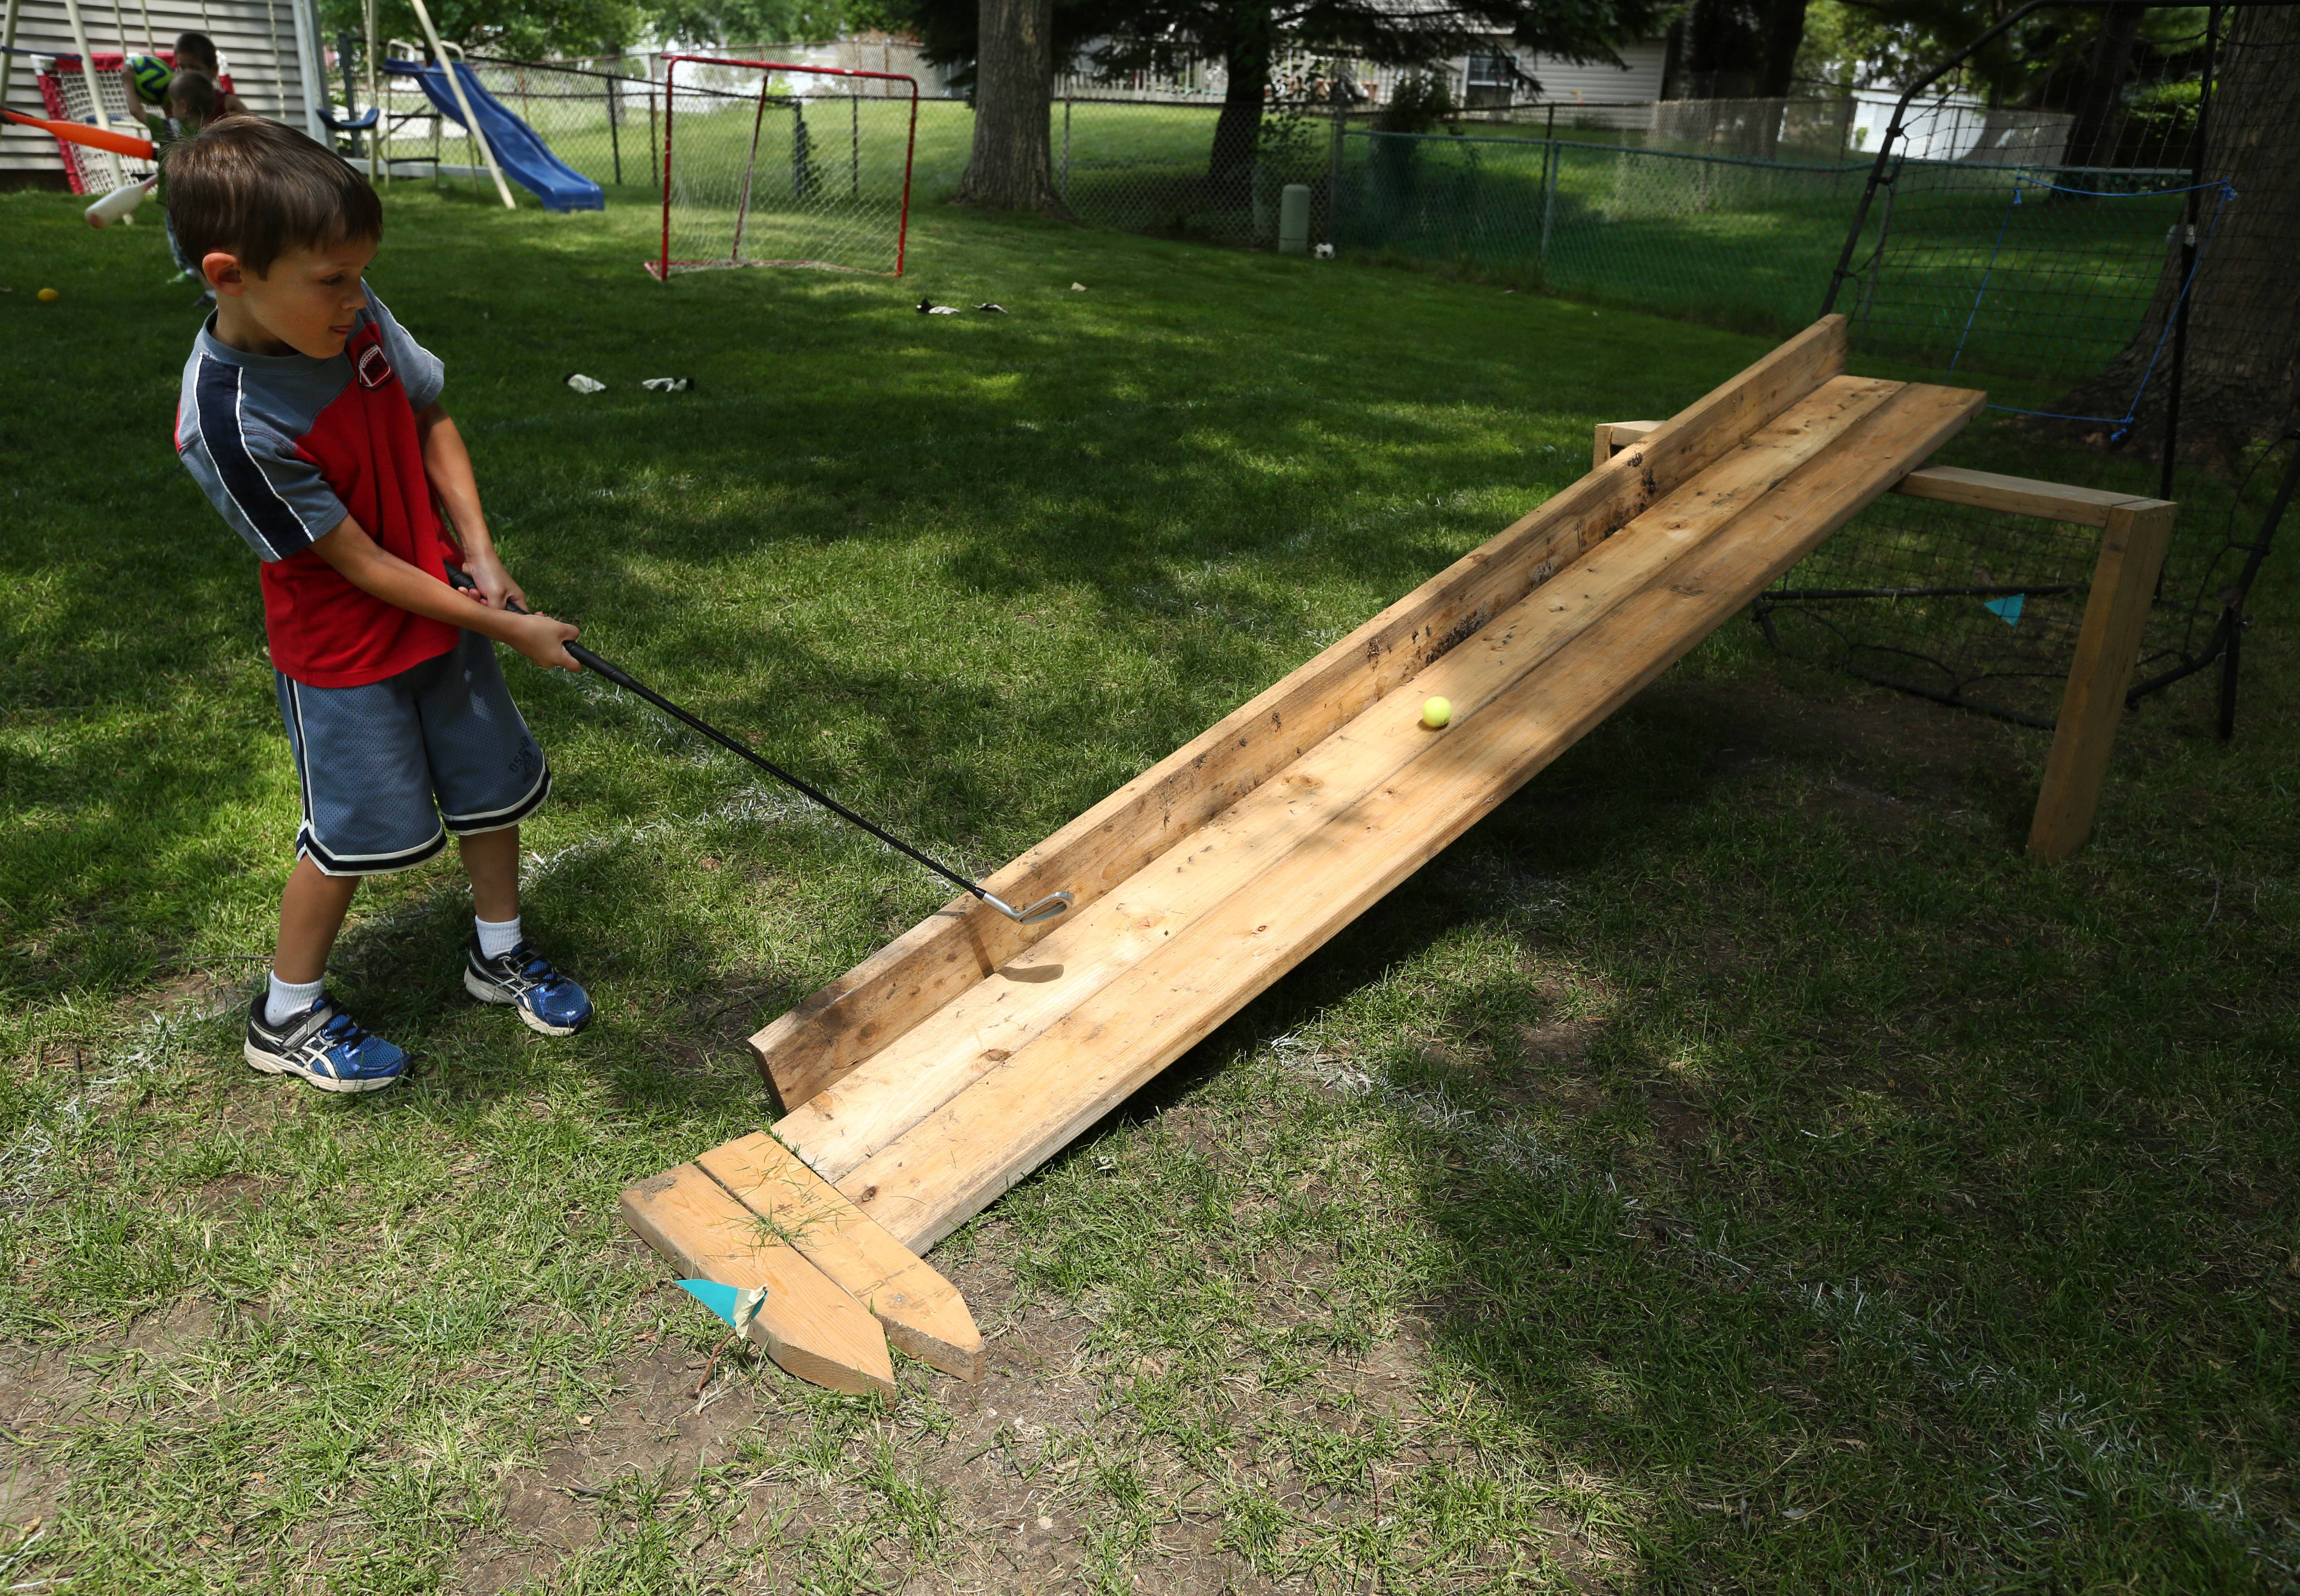 Caden Williams, 5, takes a swing on a hole requiring the ball to travel up a wooden path before dropping into a soccer net.